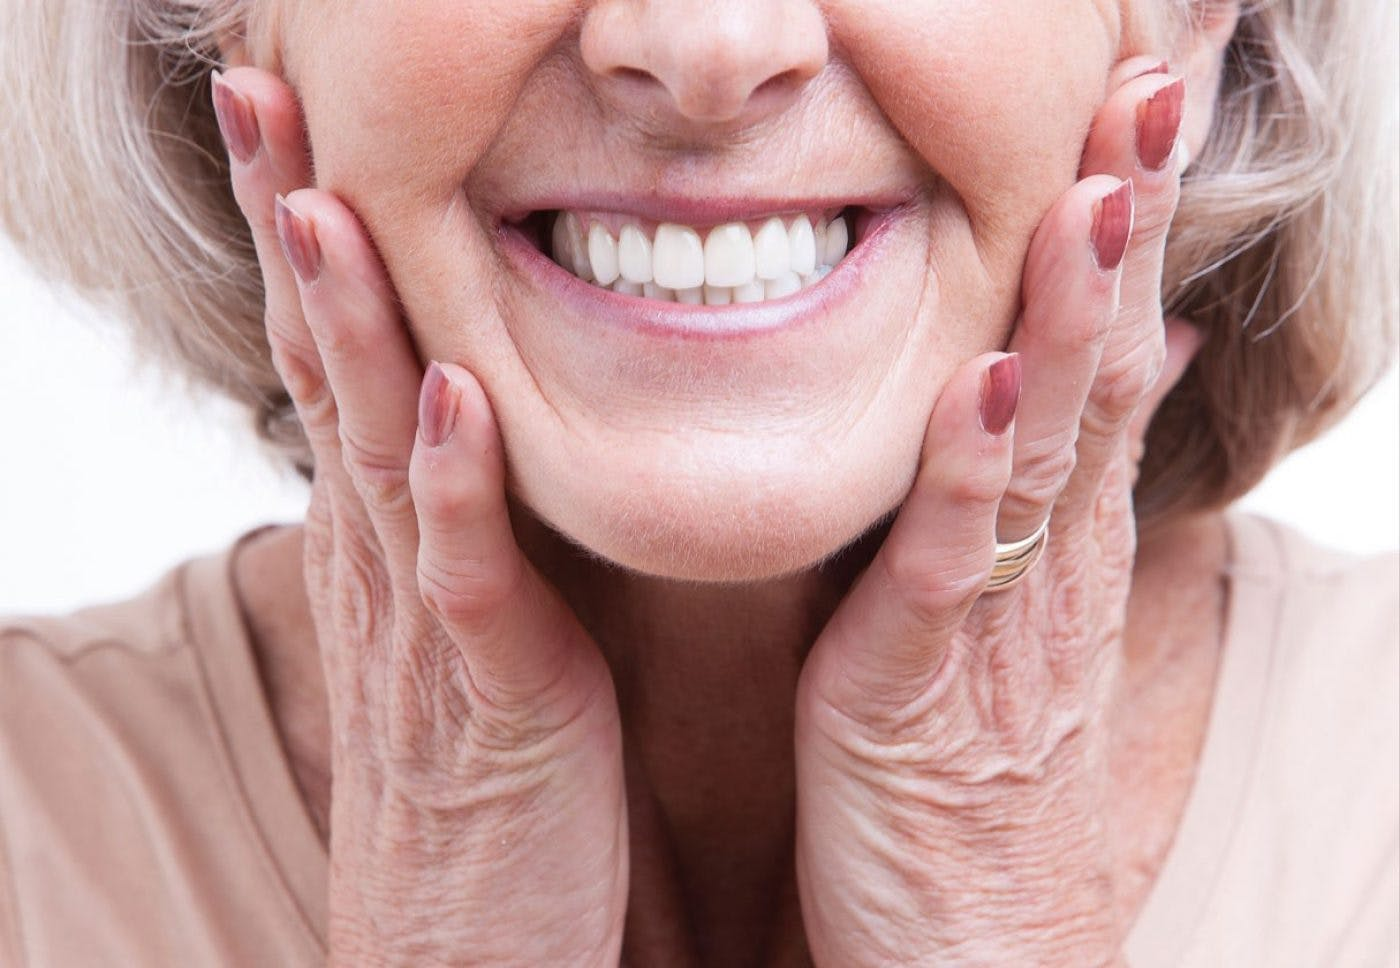 32 Whites Replacing Teeth Dentures